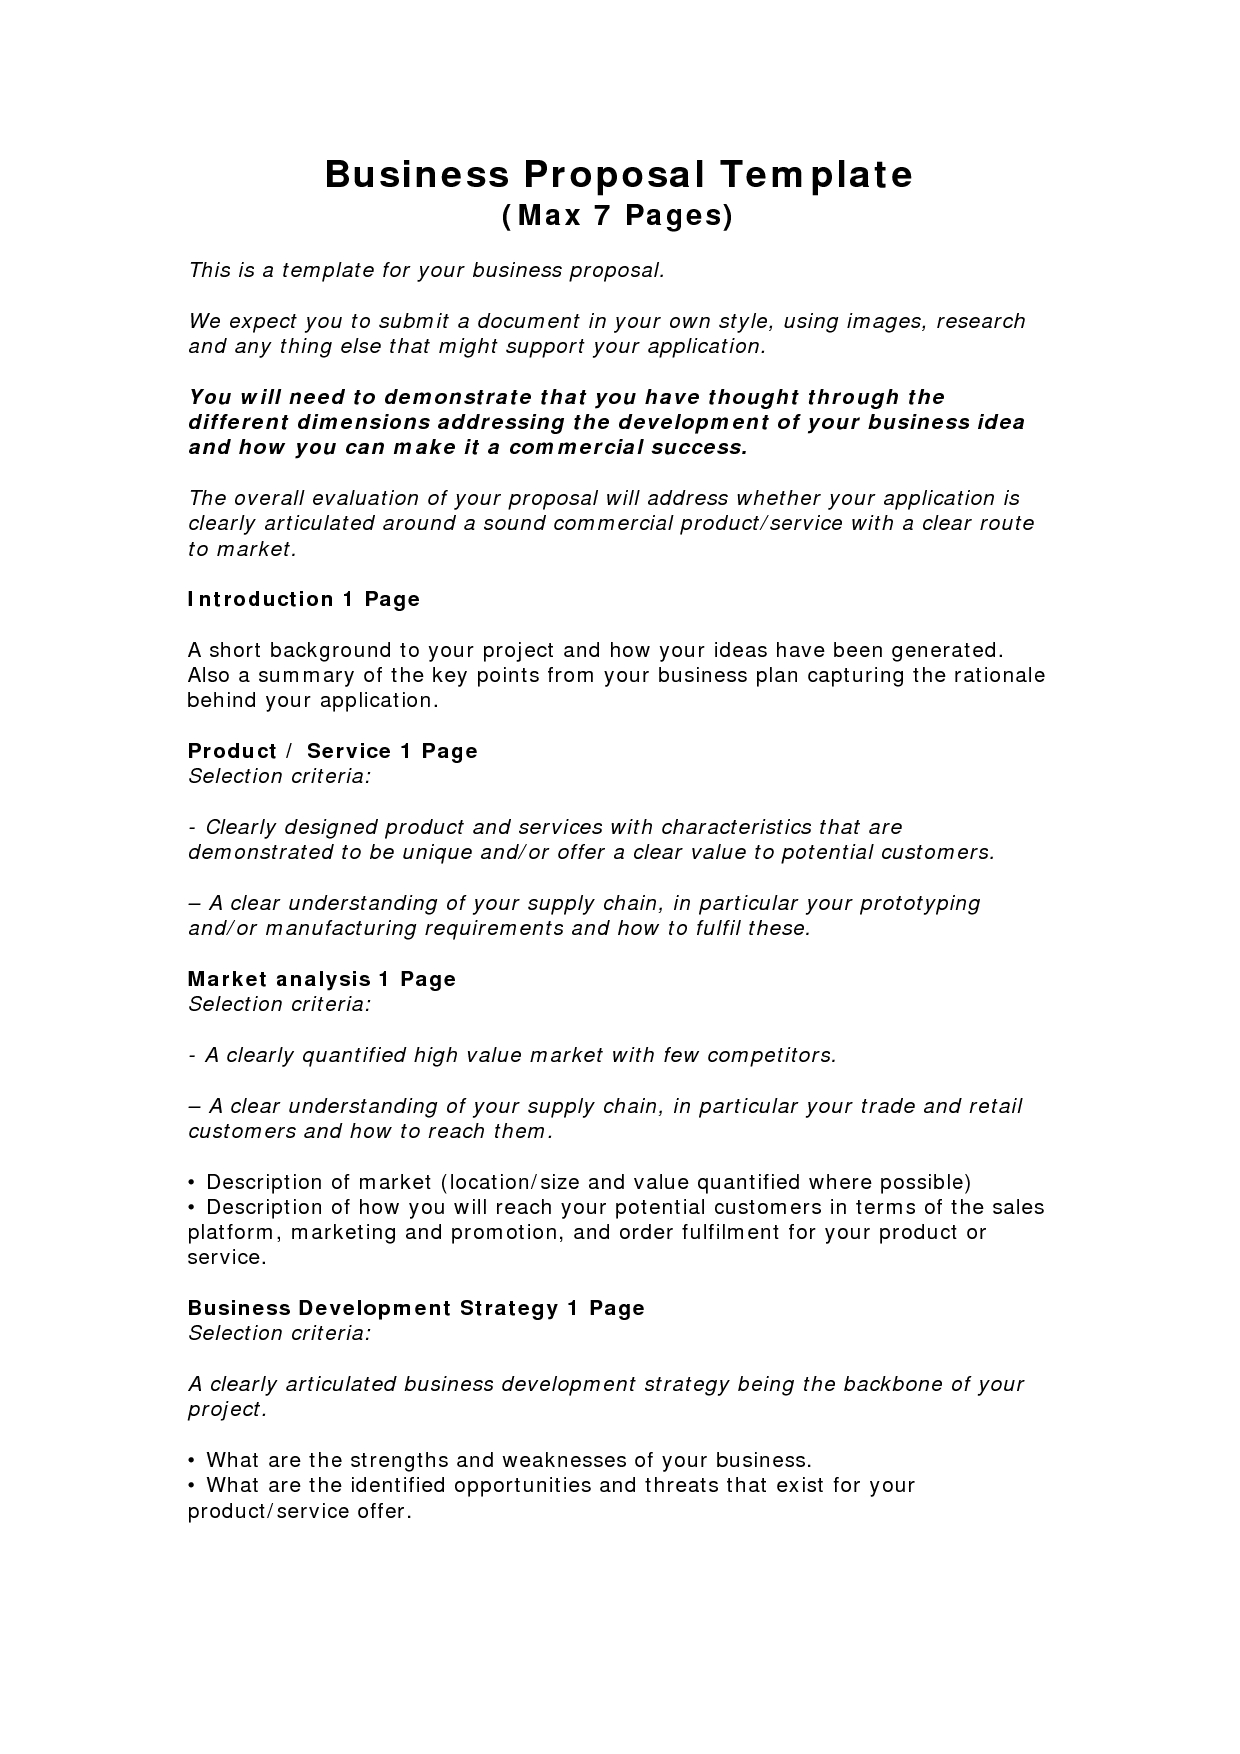 Business Proposal Templates Examples  Business Proposal Template With Regard To How To Put Together A Business Plan Template